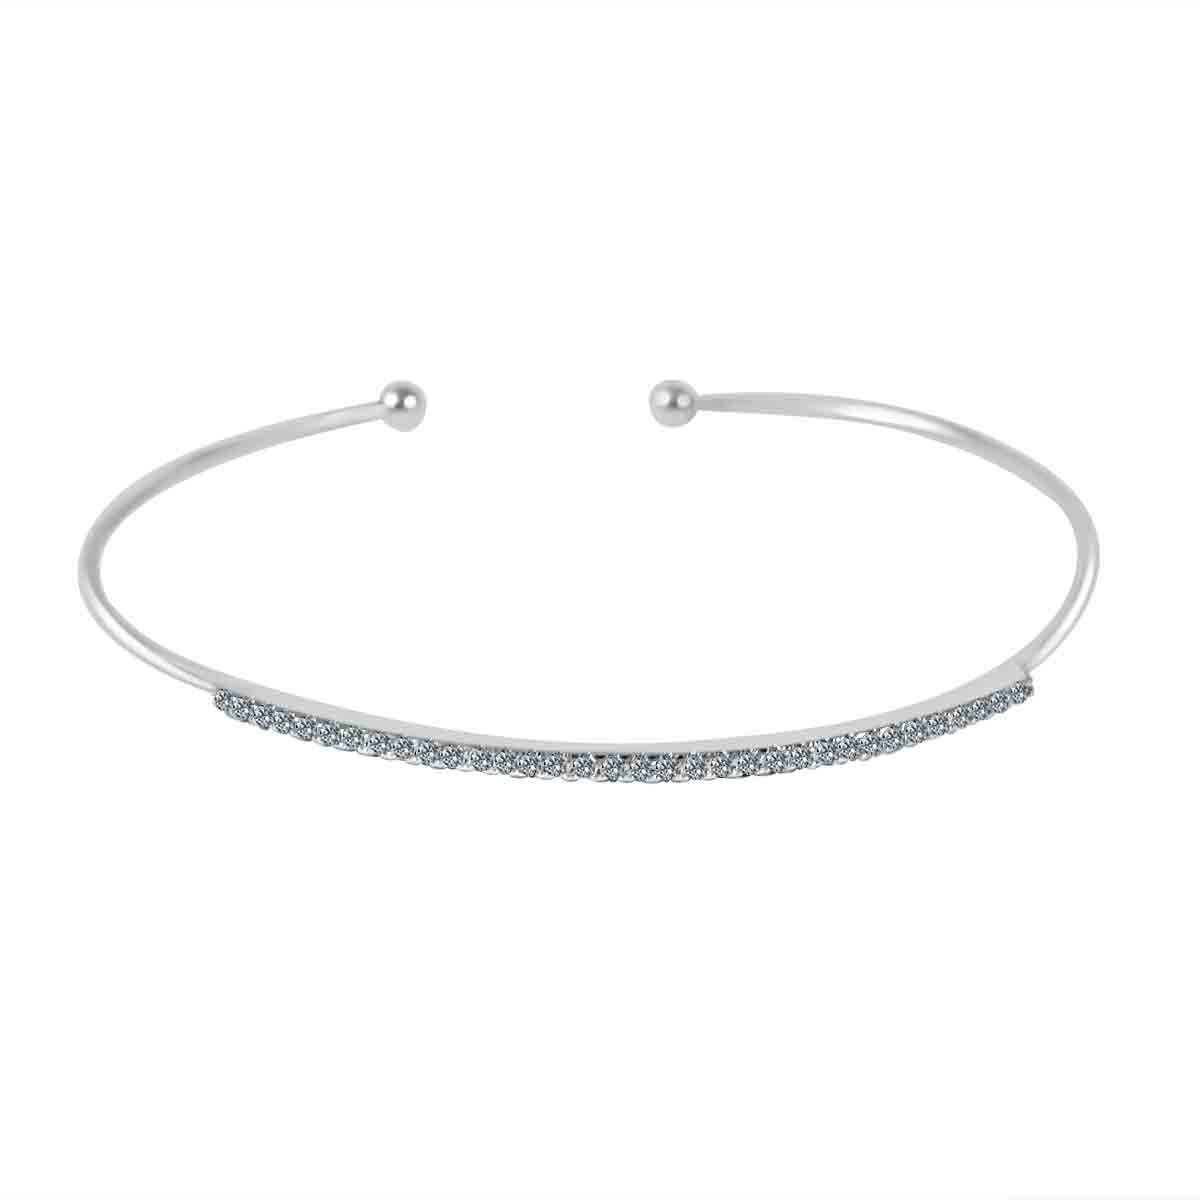 Fine Open end Bangle set w/Zirconite Cubic Zirconia pave bar. 702B1203